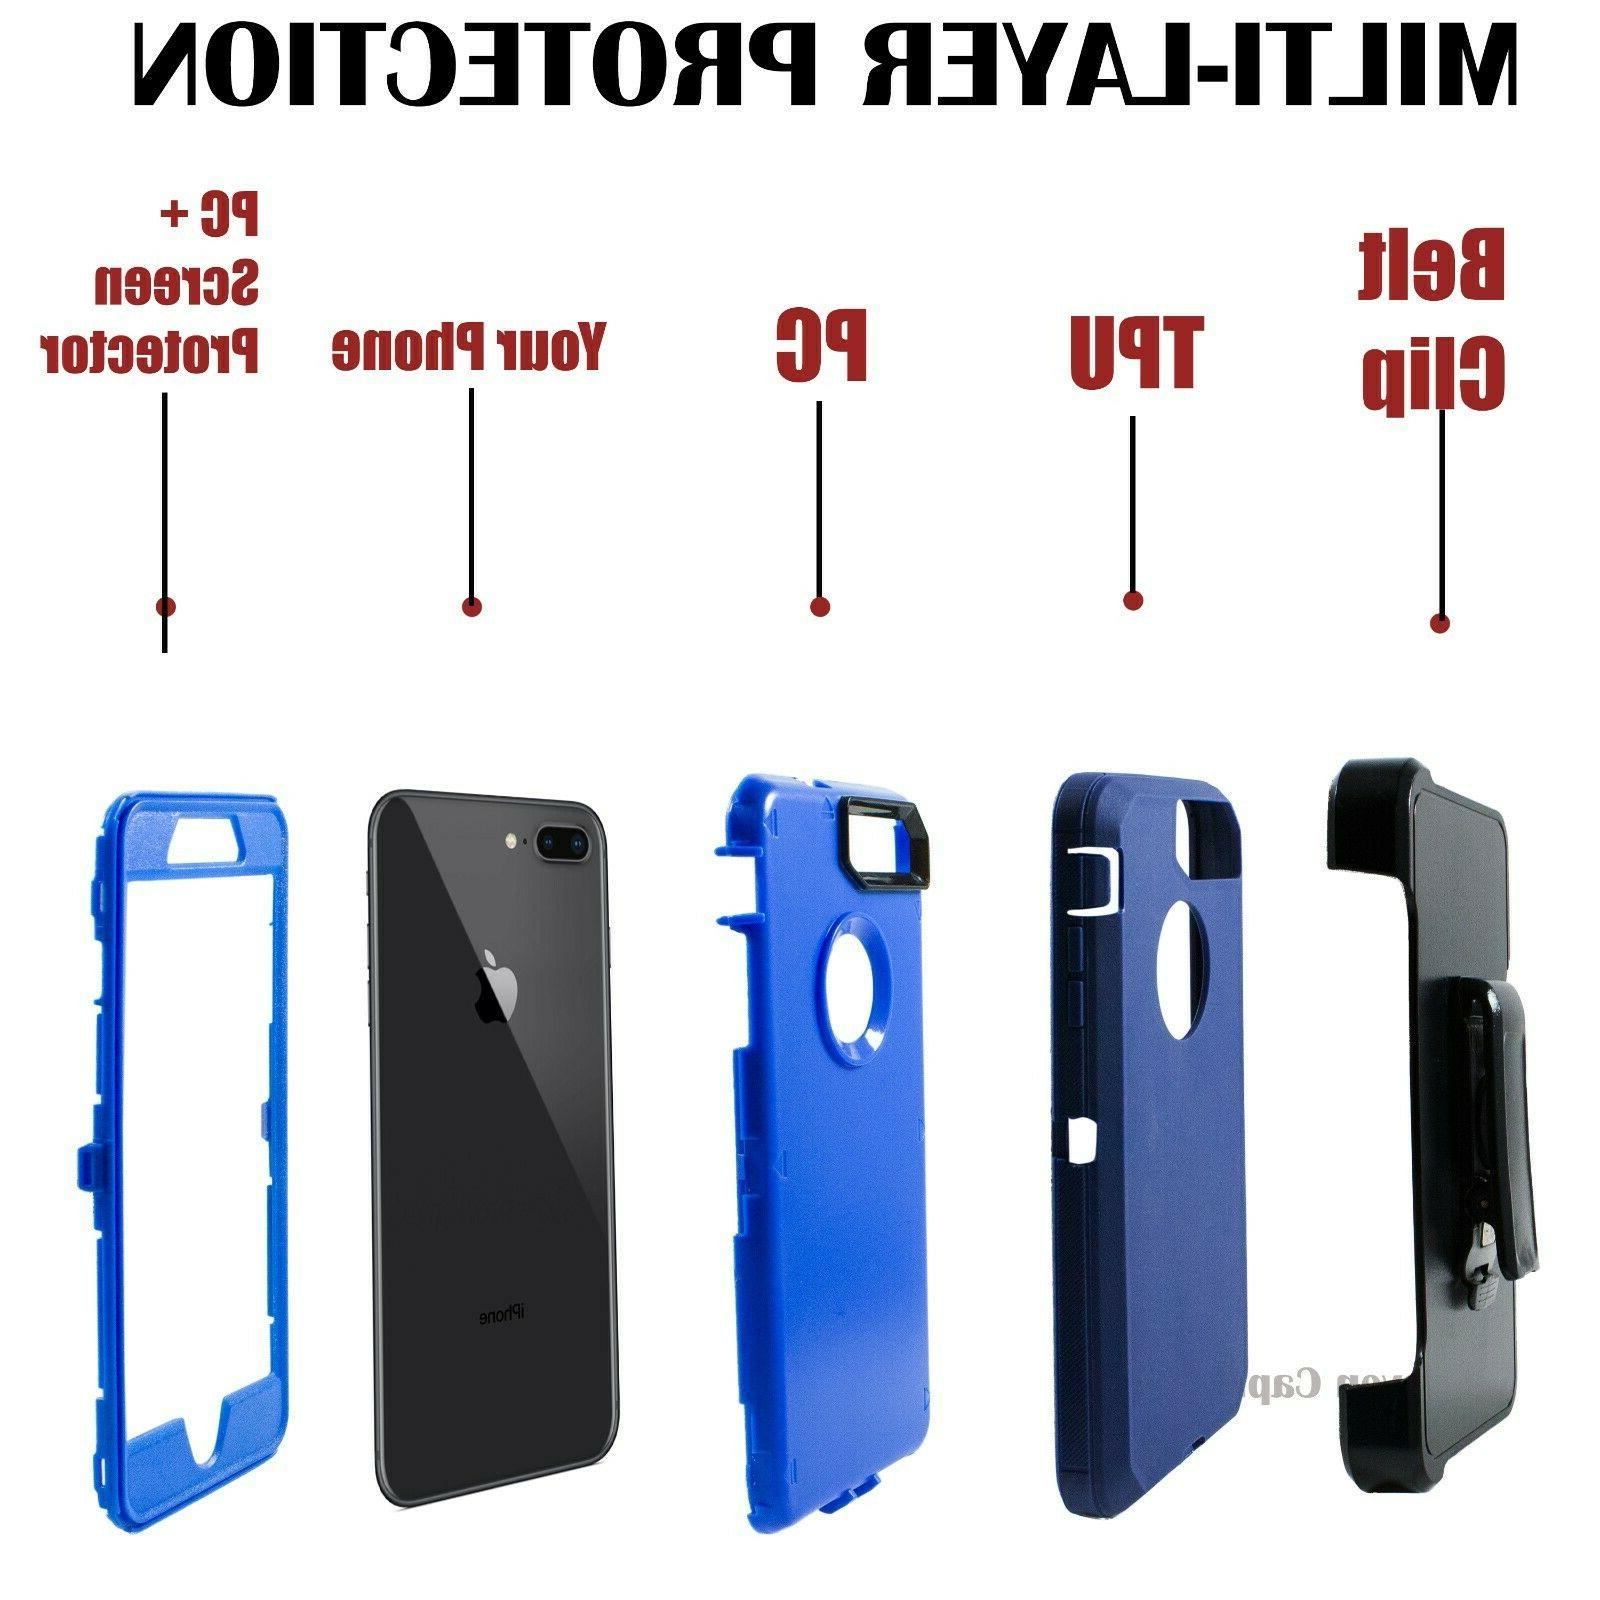 For Plus Shockproof Case Cover Belt Clip Otterbox